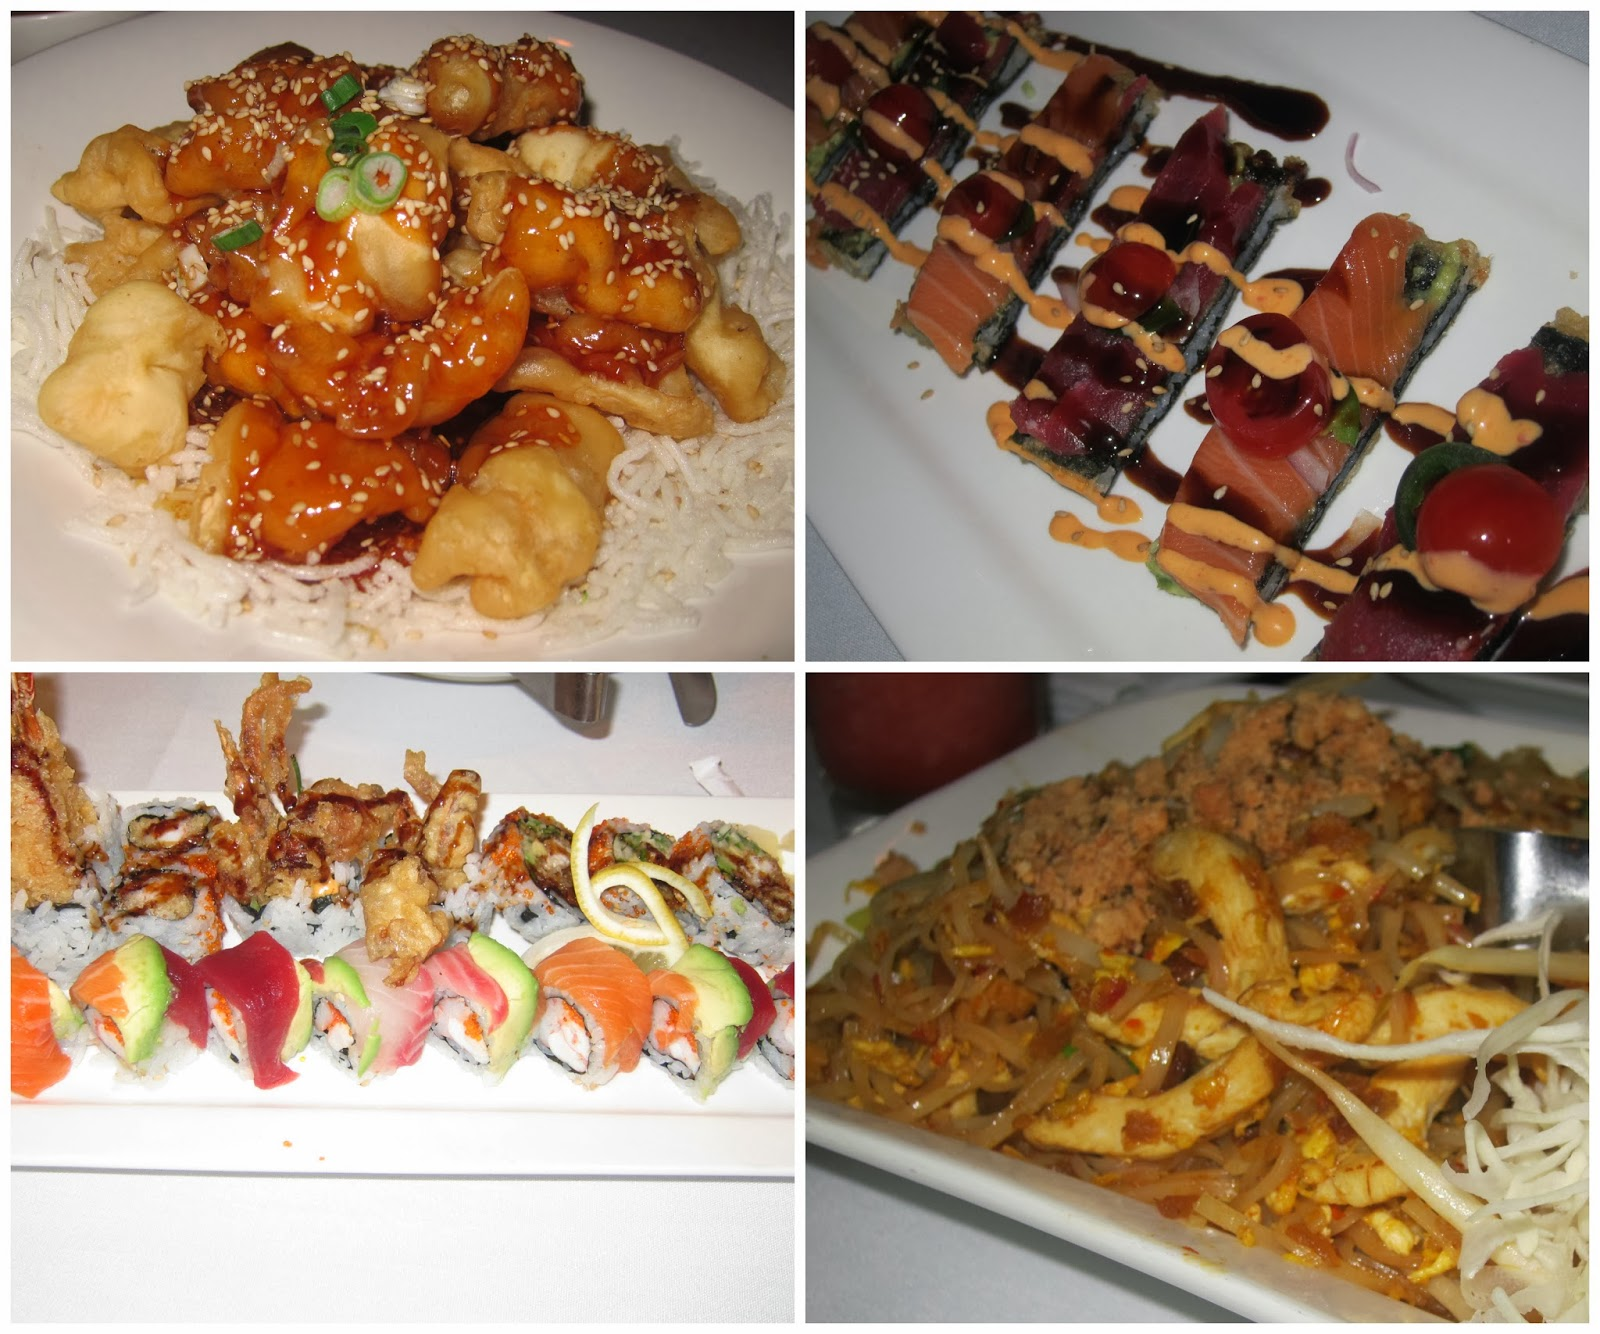 All Seasons Table Pan Asian Restaurant in Malden